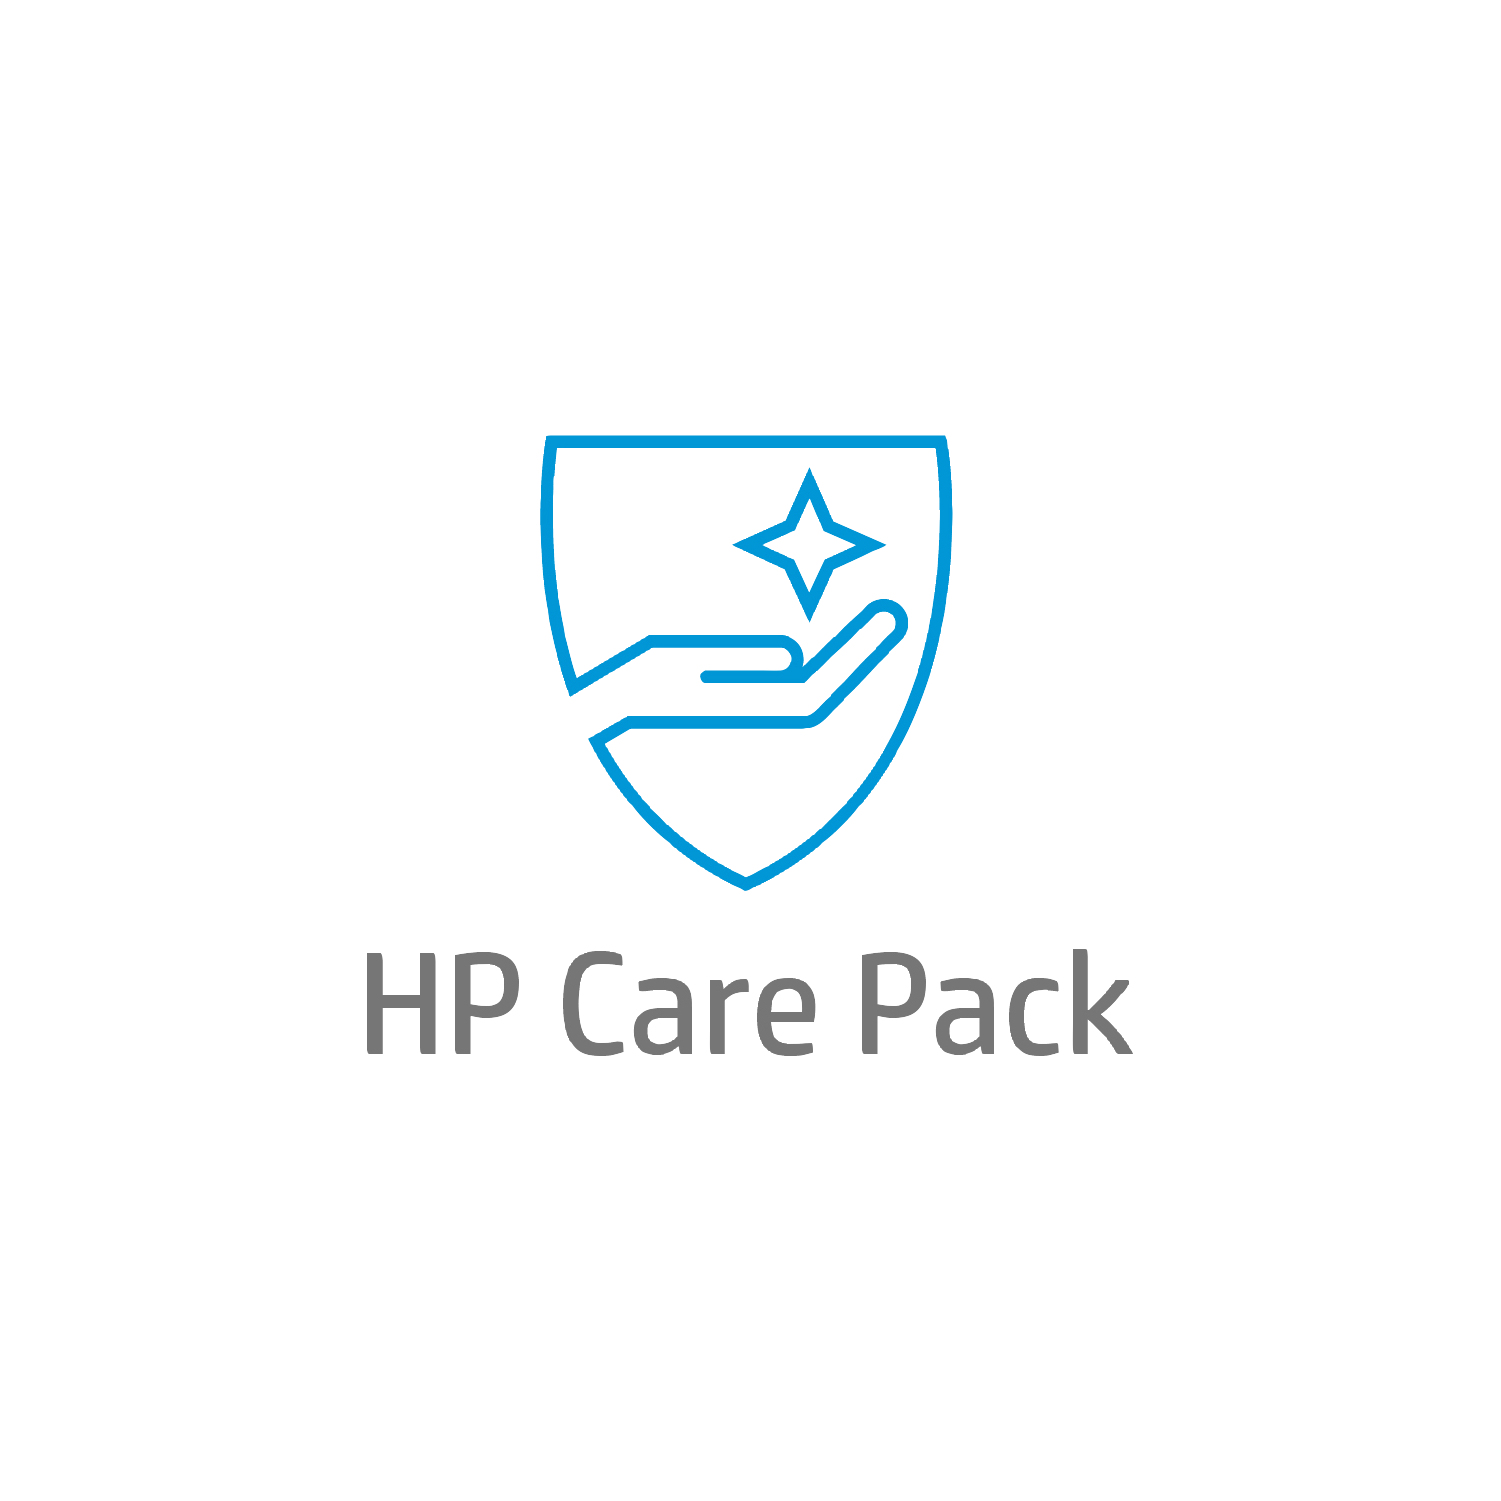 HP 3YR NBD ONSITE OPT CSR DT WS ONLY H/W